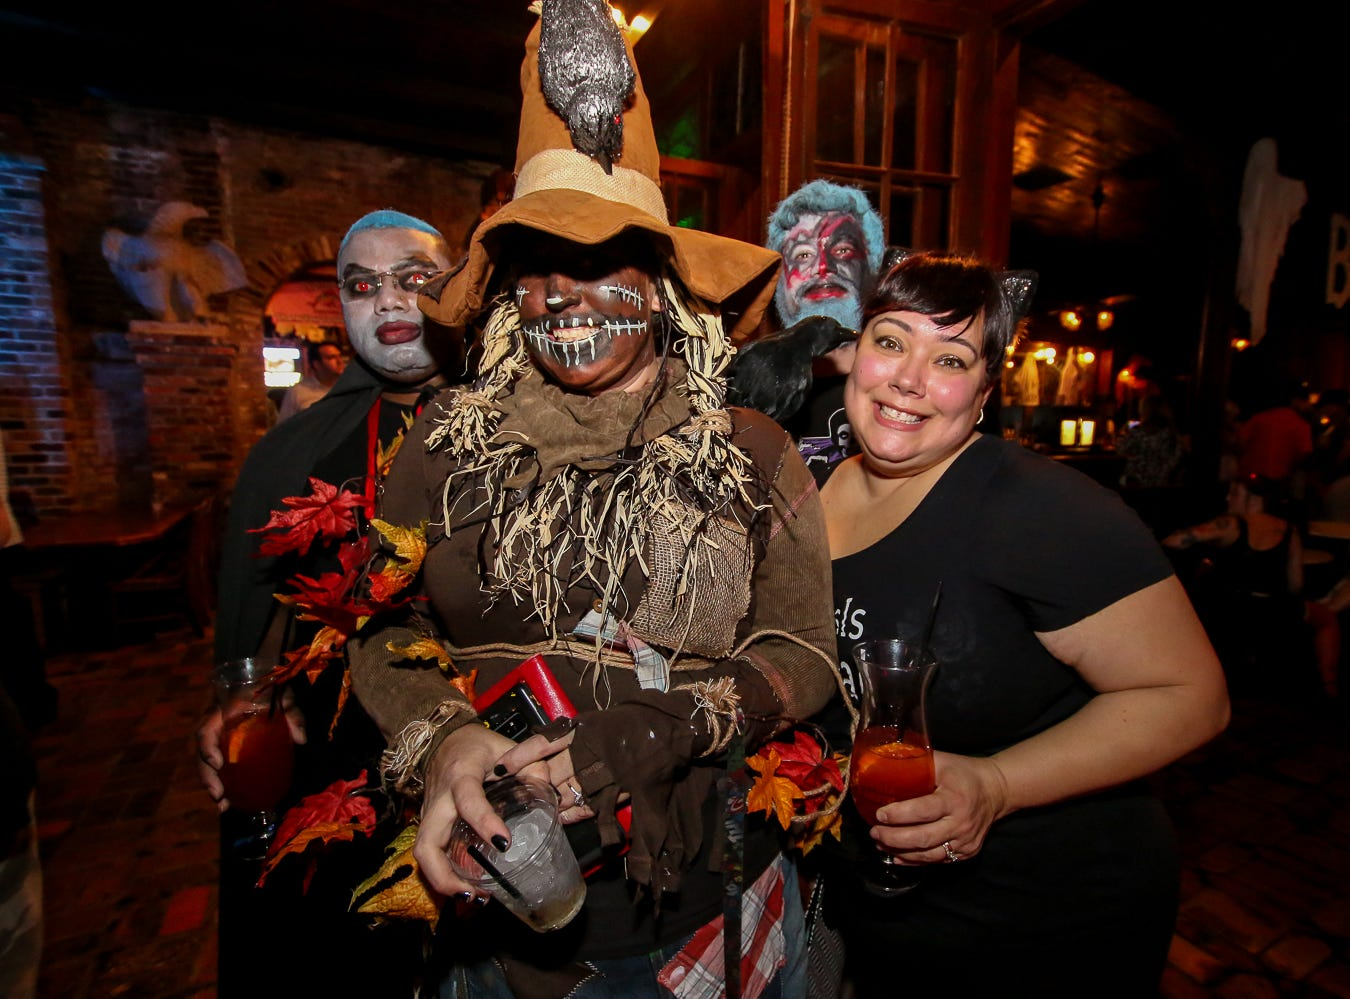 People enjoy Seville Quarter's Halloween party, which featured over 100 entrants in a $1,000 grand prize costume contest, on Wednesday, October 31, 2018.